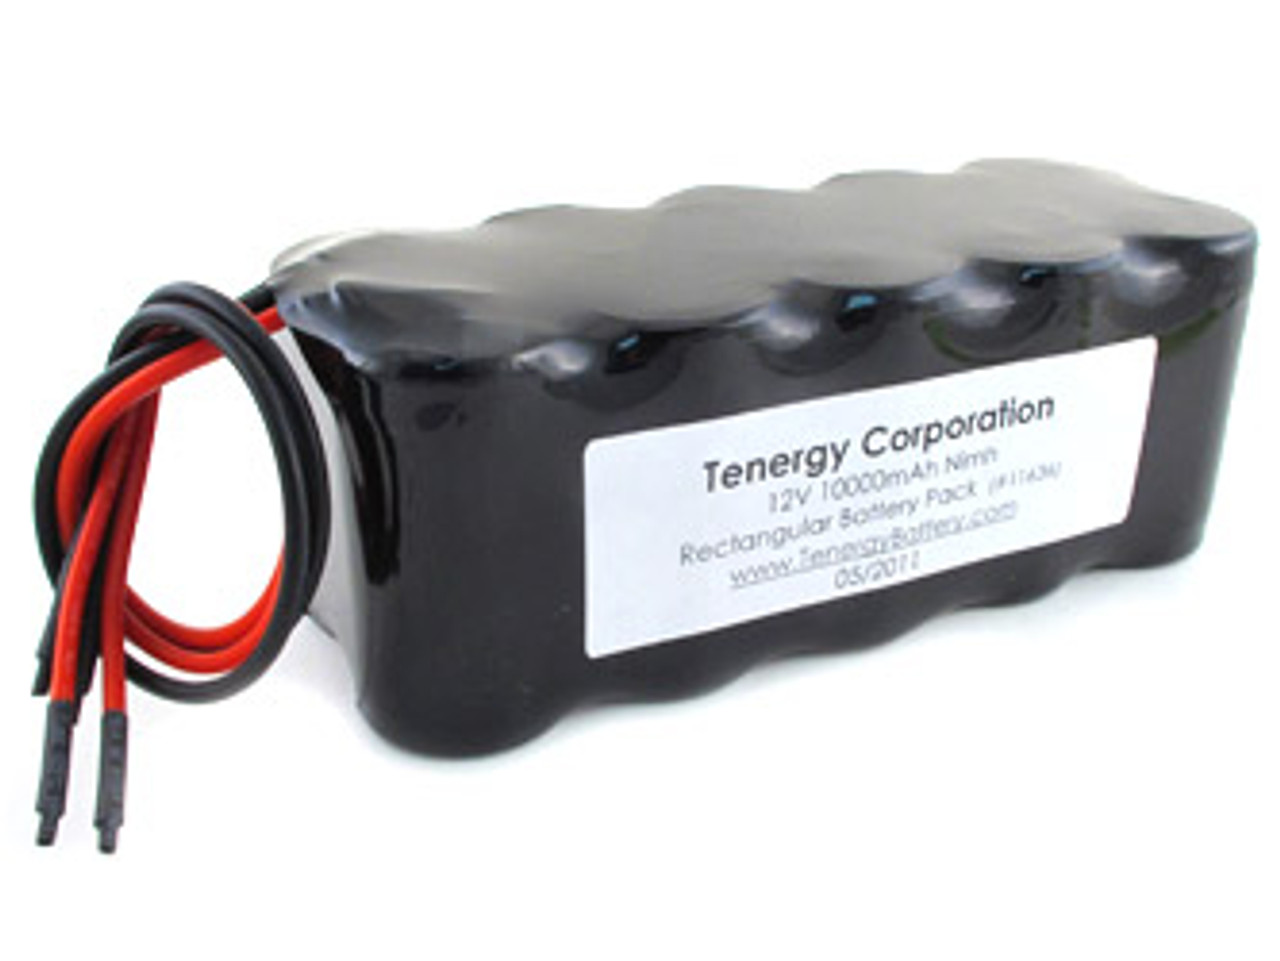 AT: Tenergy NiMH 12V 10000mAh Rechargeable Battery Pack (10S1P, 120.0Wh, 10A Rate, 2 sets of Bare Leads)